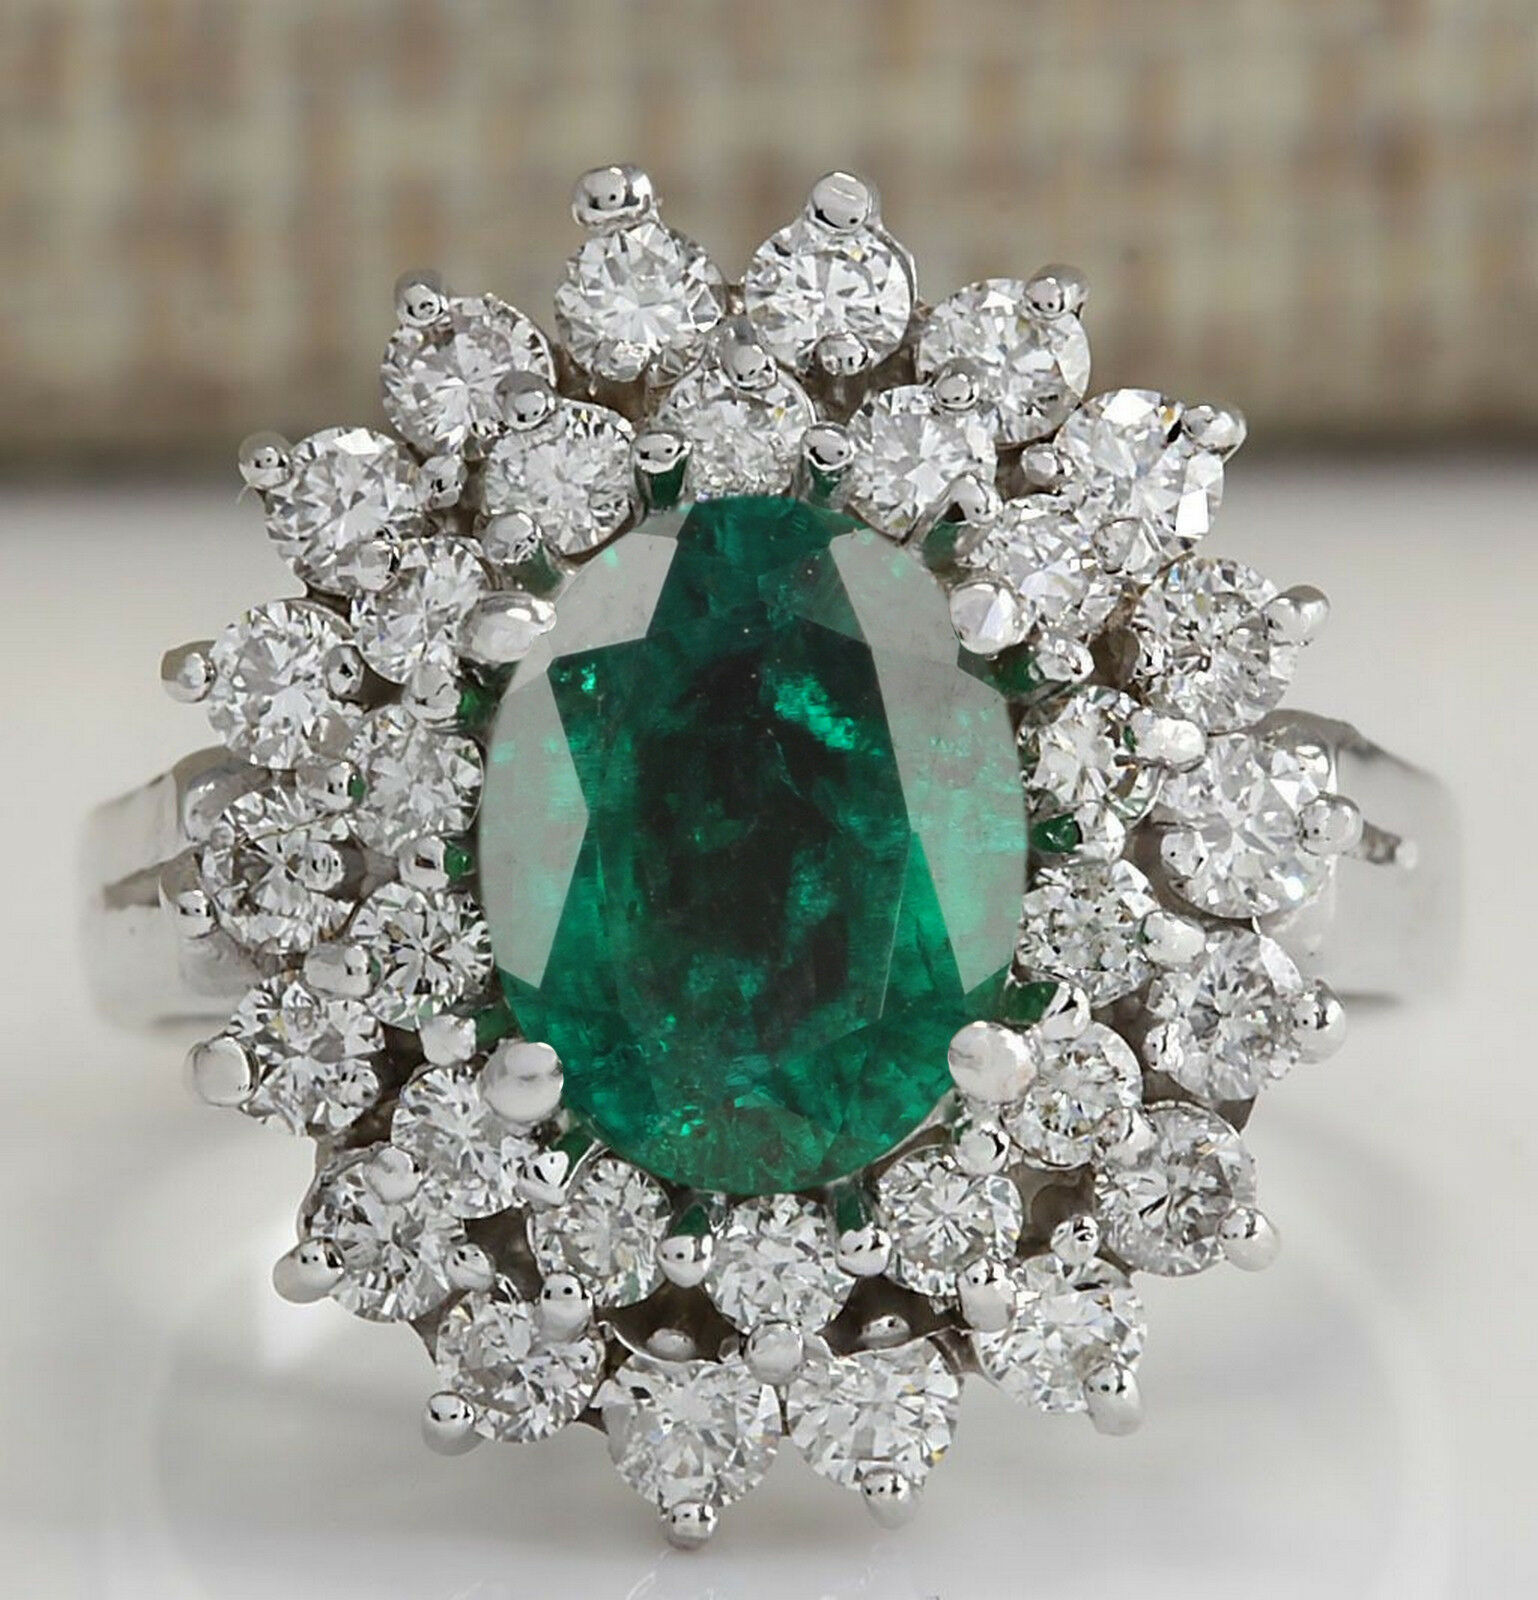 14KT White gold 1.80 Carat Natural Green Emerald EGL Certified Diamond Ring